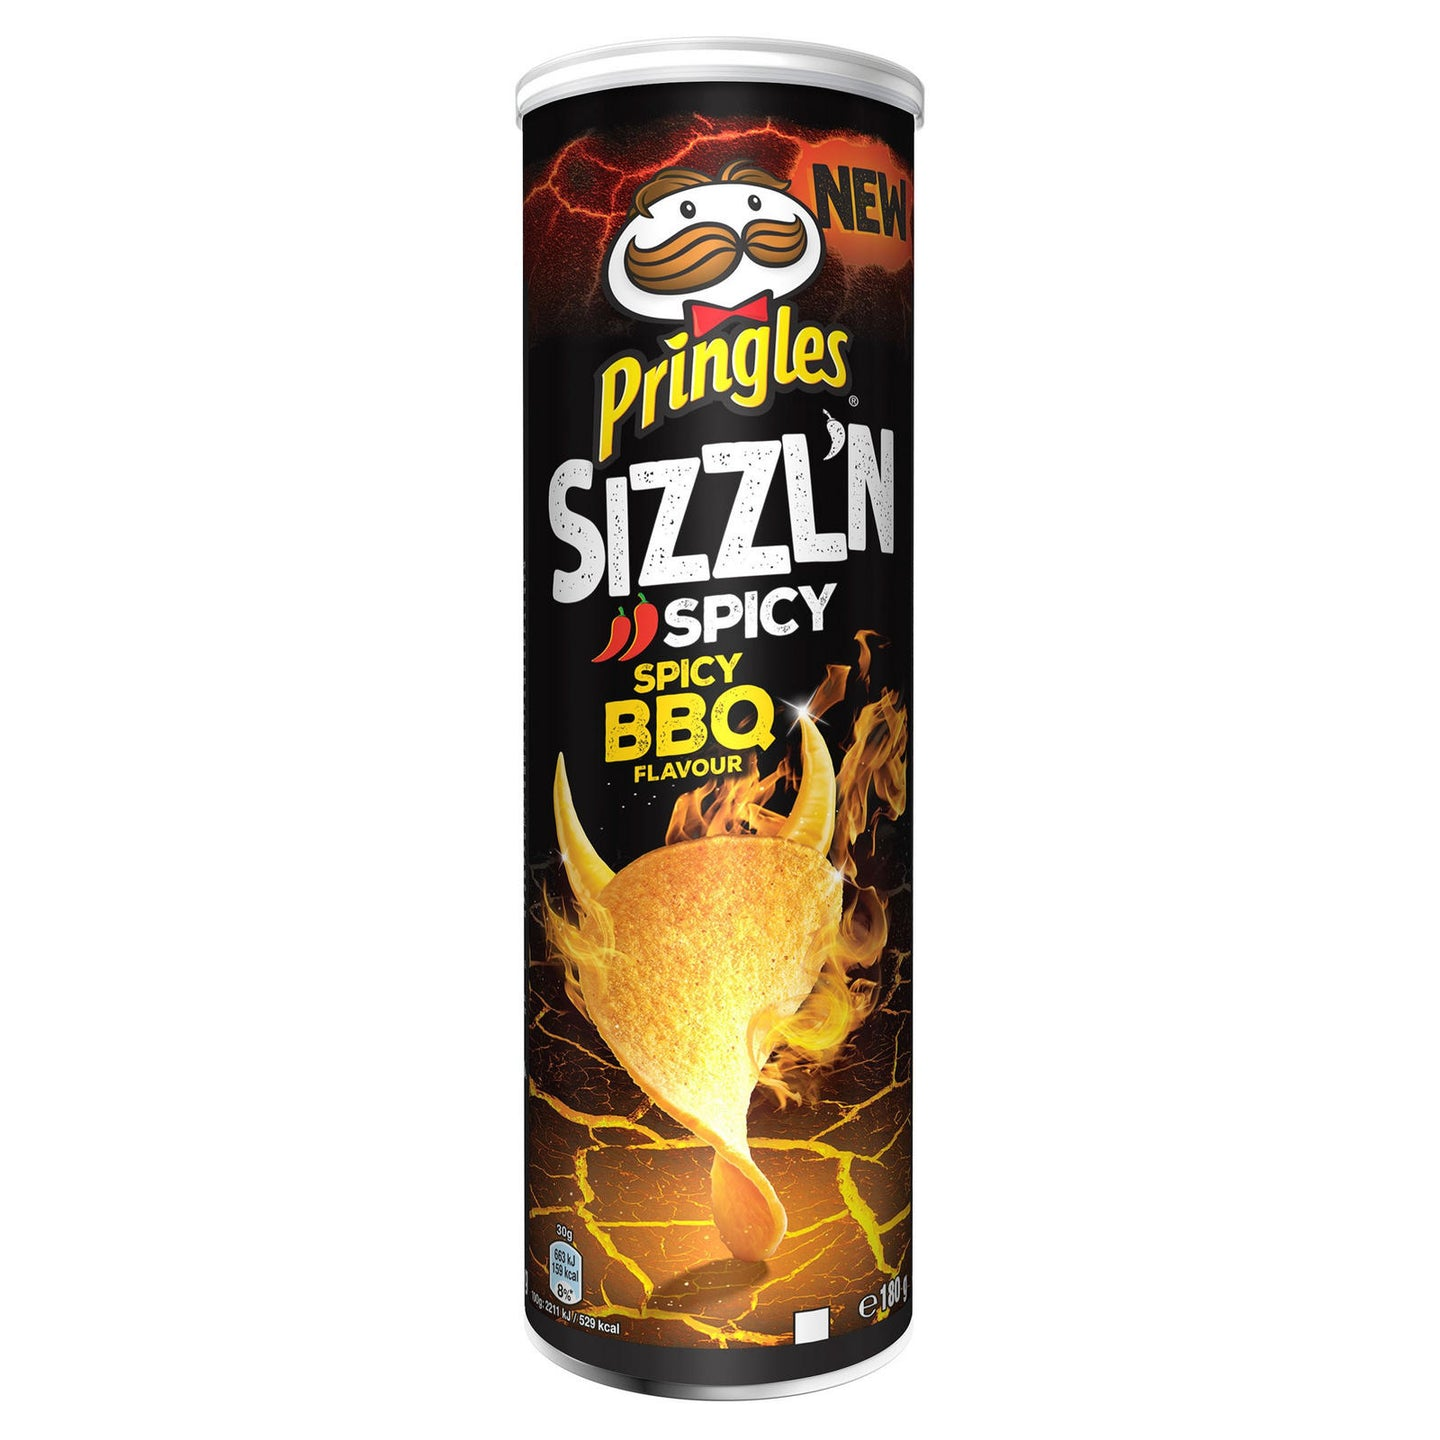 Pringles Sizzl'n Spicy BBQ Flavour 180g